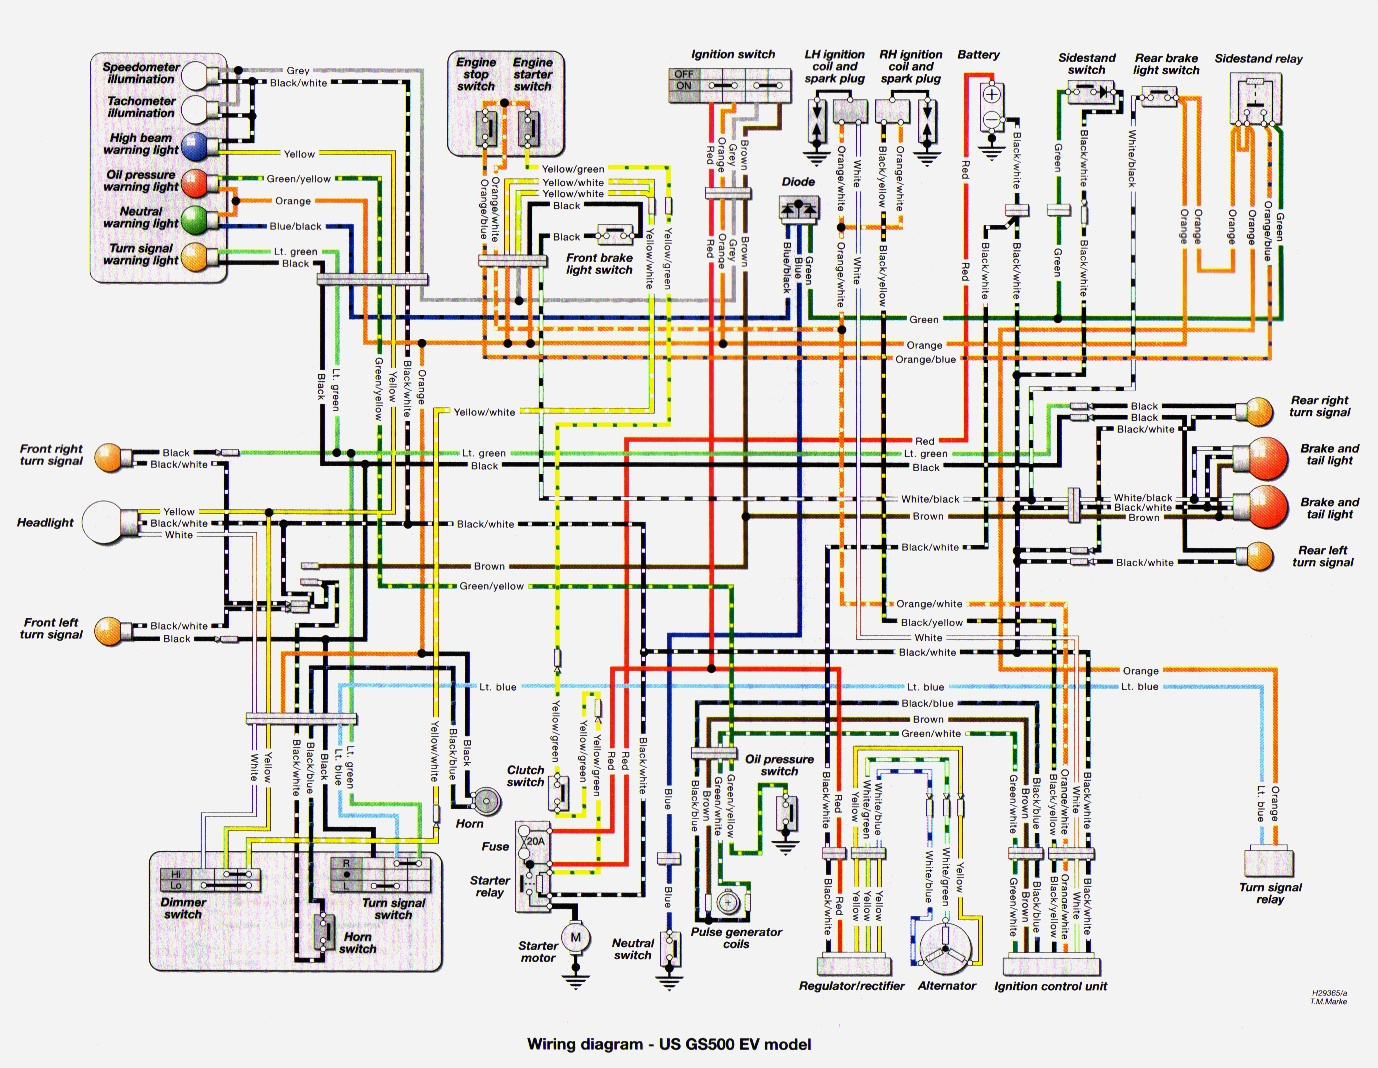 Haynes_WiringDiagram_US_97 wiring diagram of 2003 ford expedition the wiring diagram 2001 ford expedition wiring diagram at cos-gaming.co